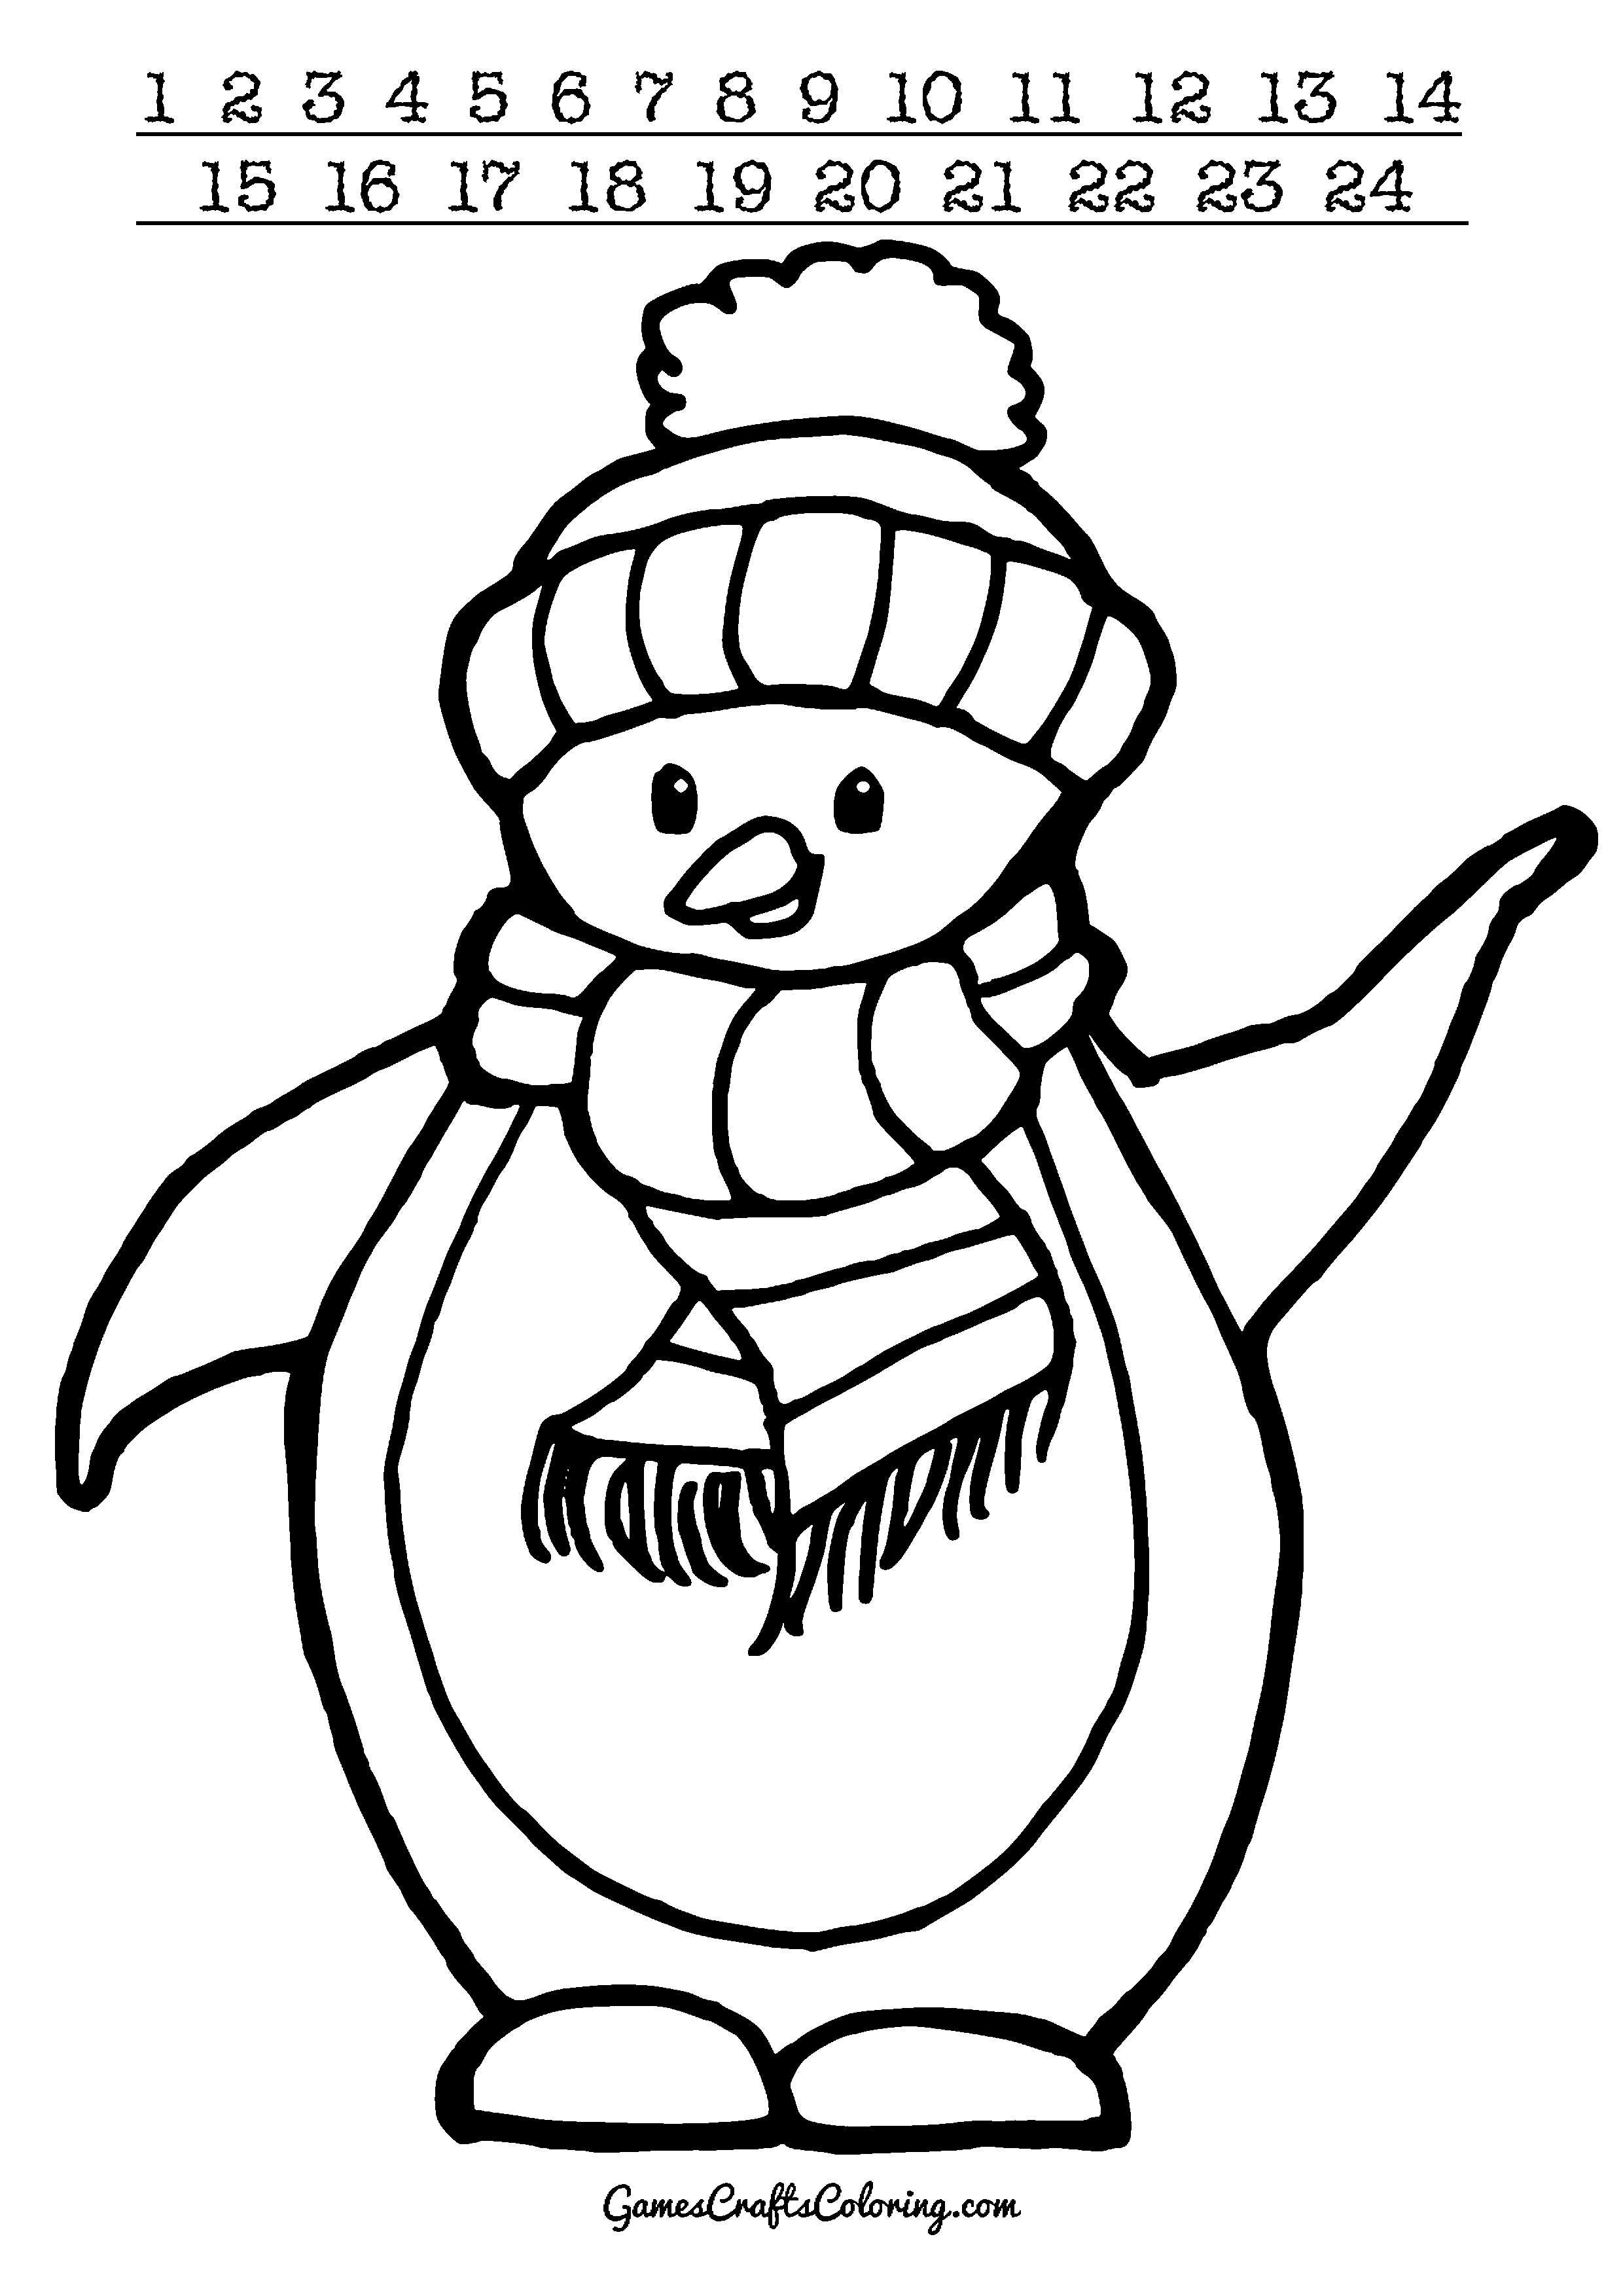 penguins pictures to print printable penguin coloring pages for kids cool2bkids print penguins to pictures